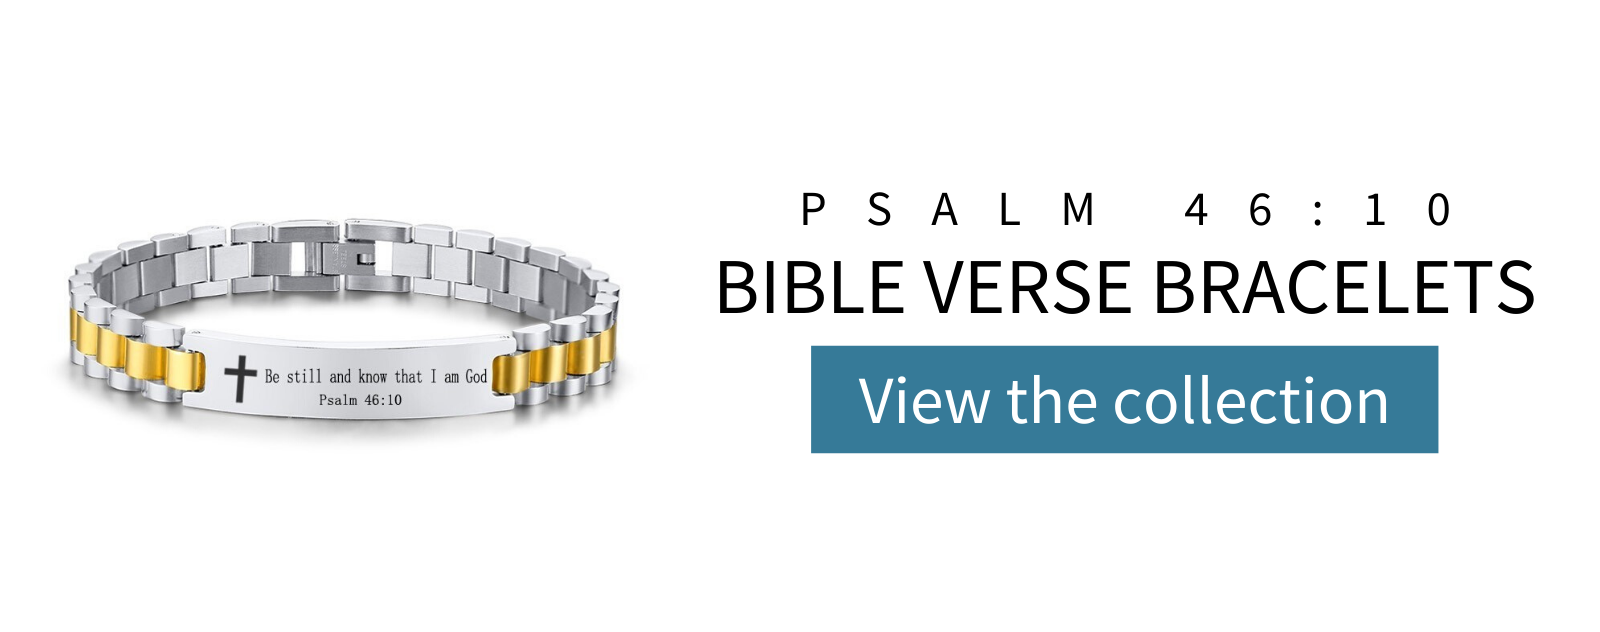 psalm 46 10 bible verse bracelet collection